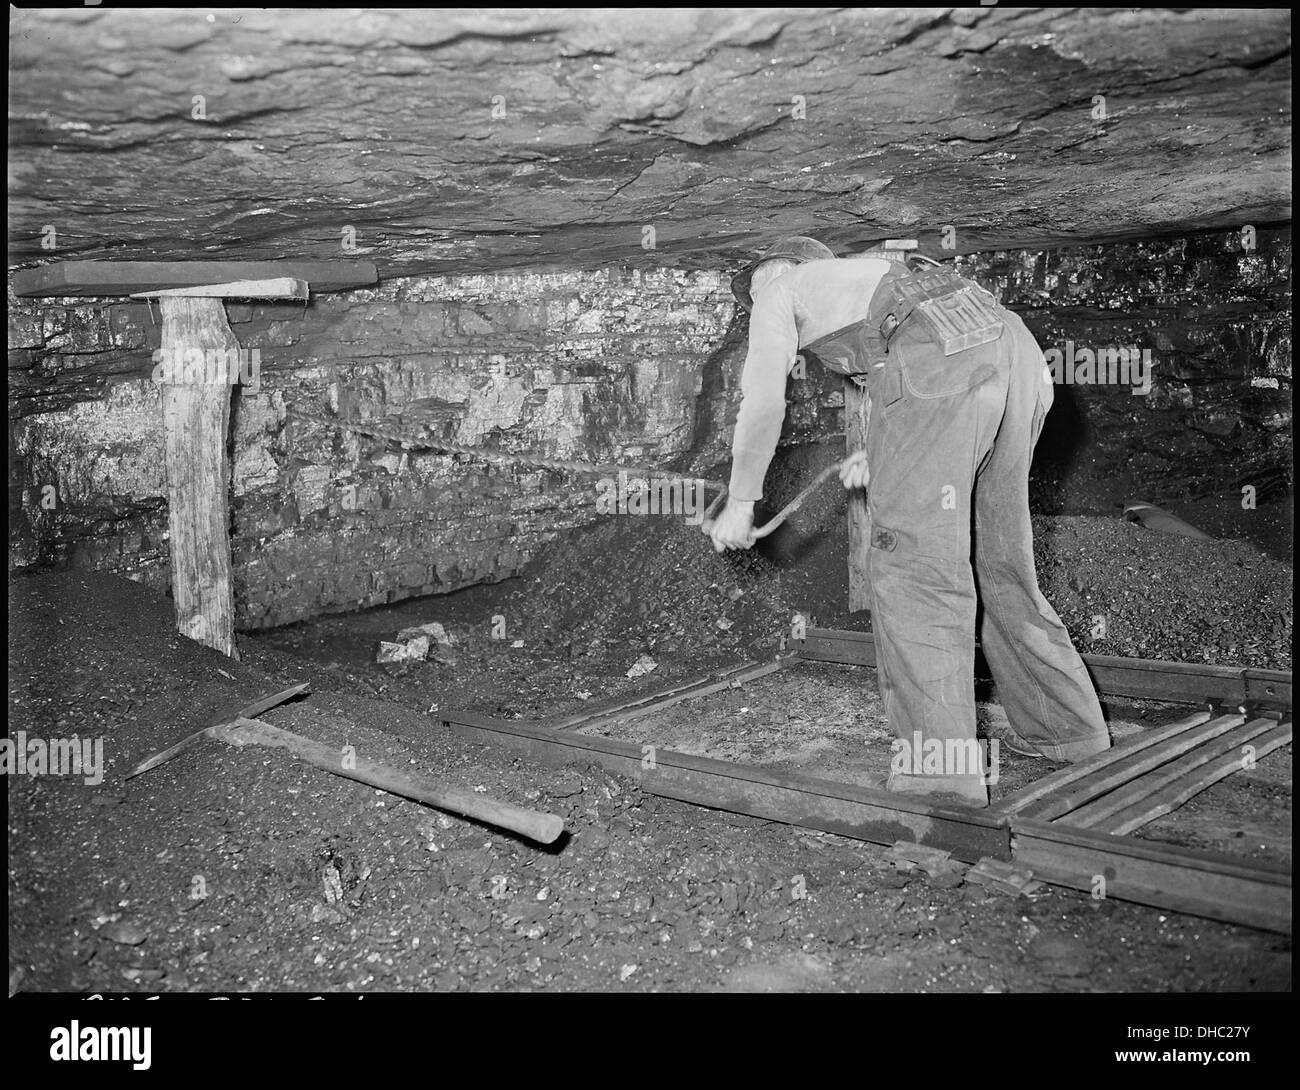 Harry Fain, coal loader, drills coal with hand auger. Powder charges are then placed and ignited. Inland Steel... 541482 - Stock Image